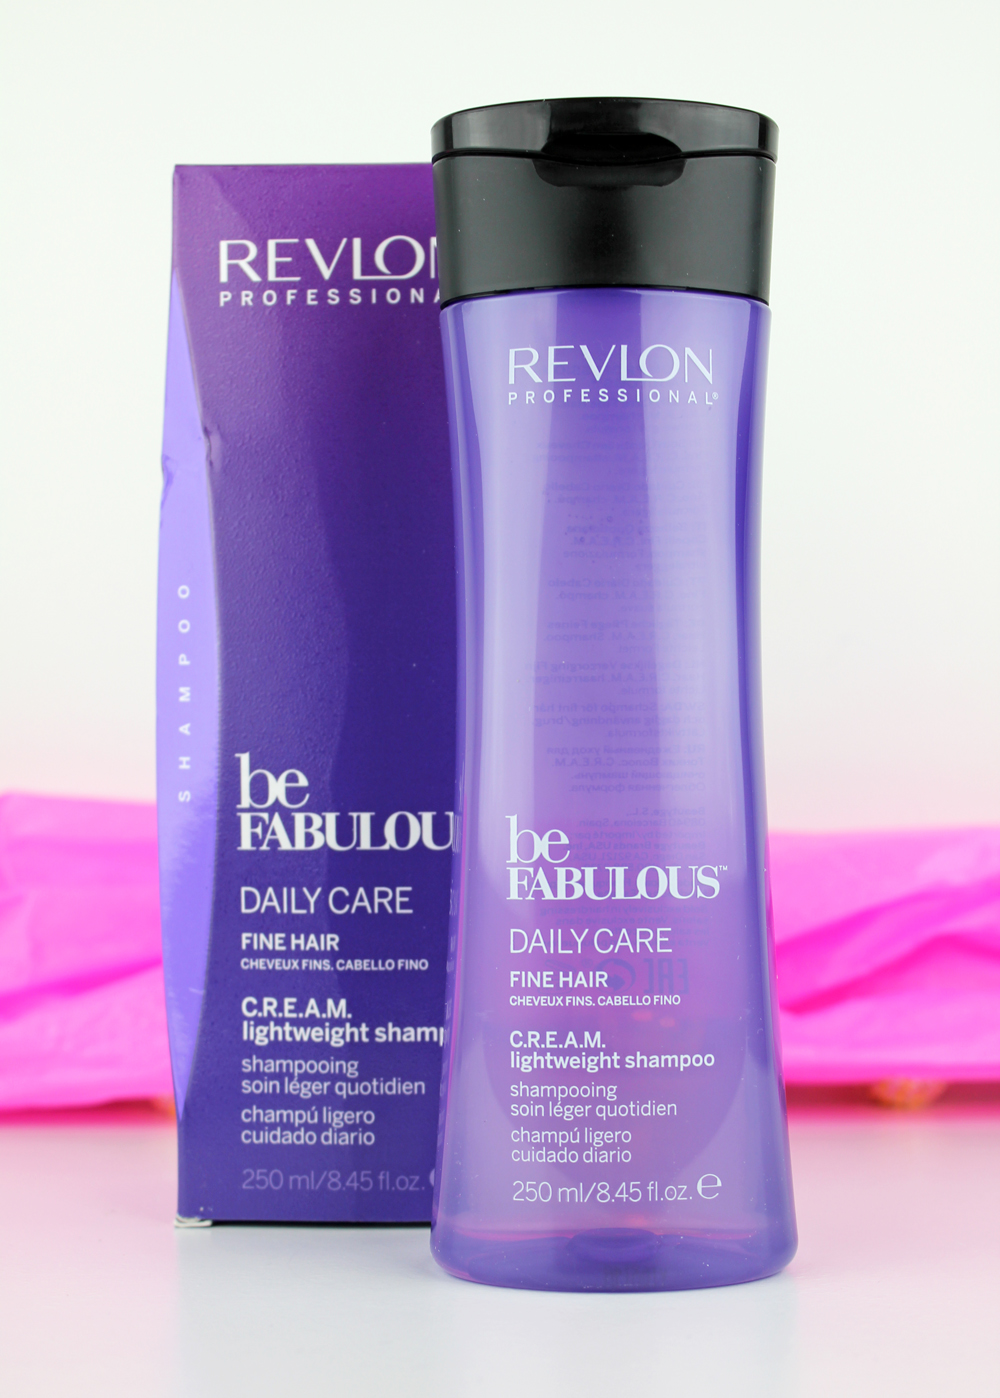 Revlon be fabulous Daily Care Fine Hair Lightweight Shampoo